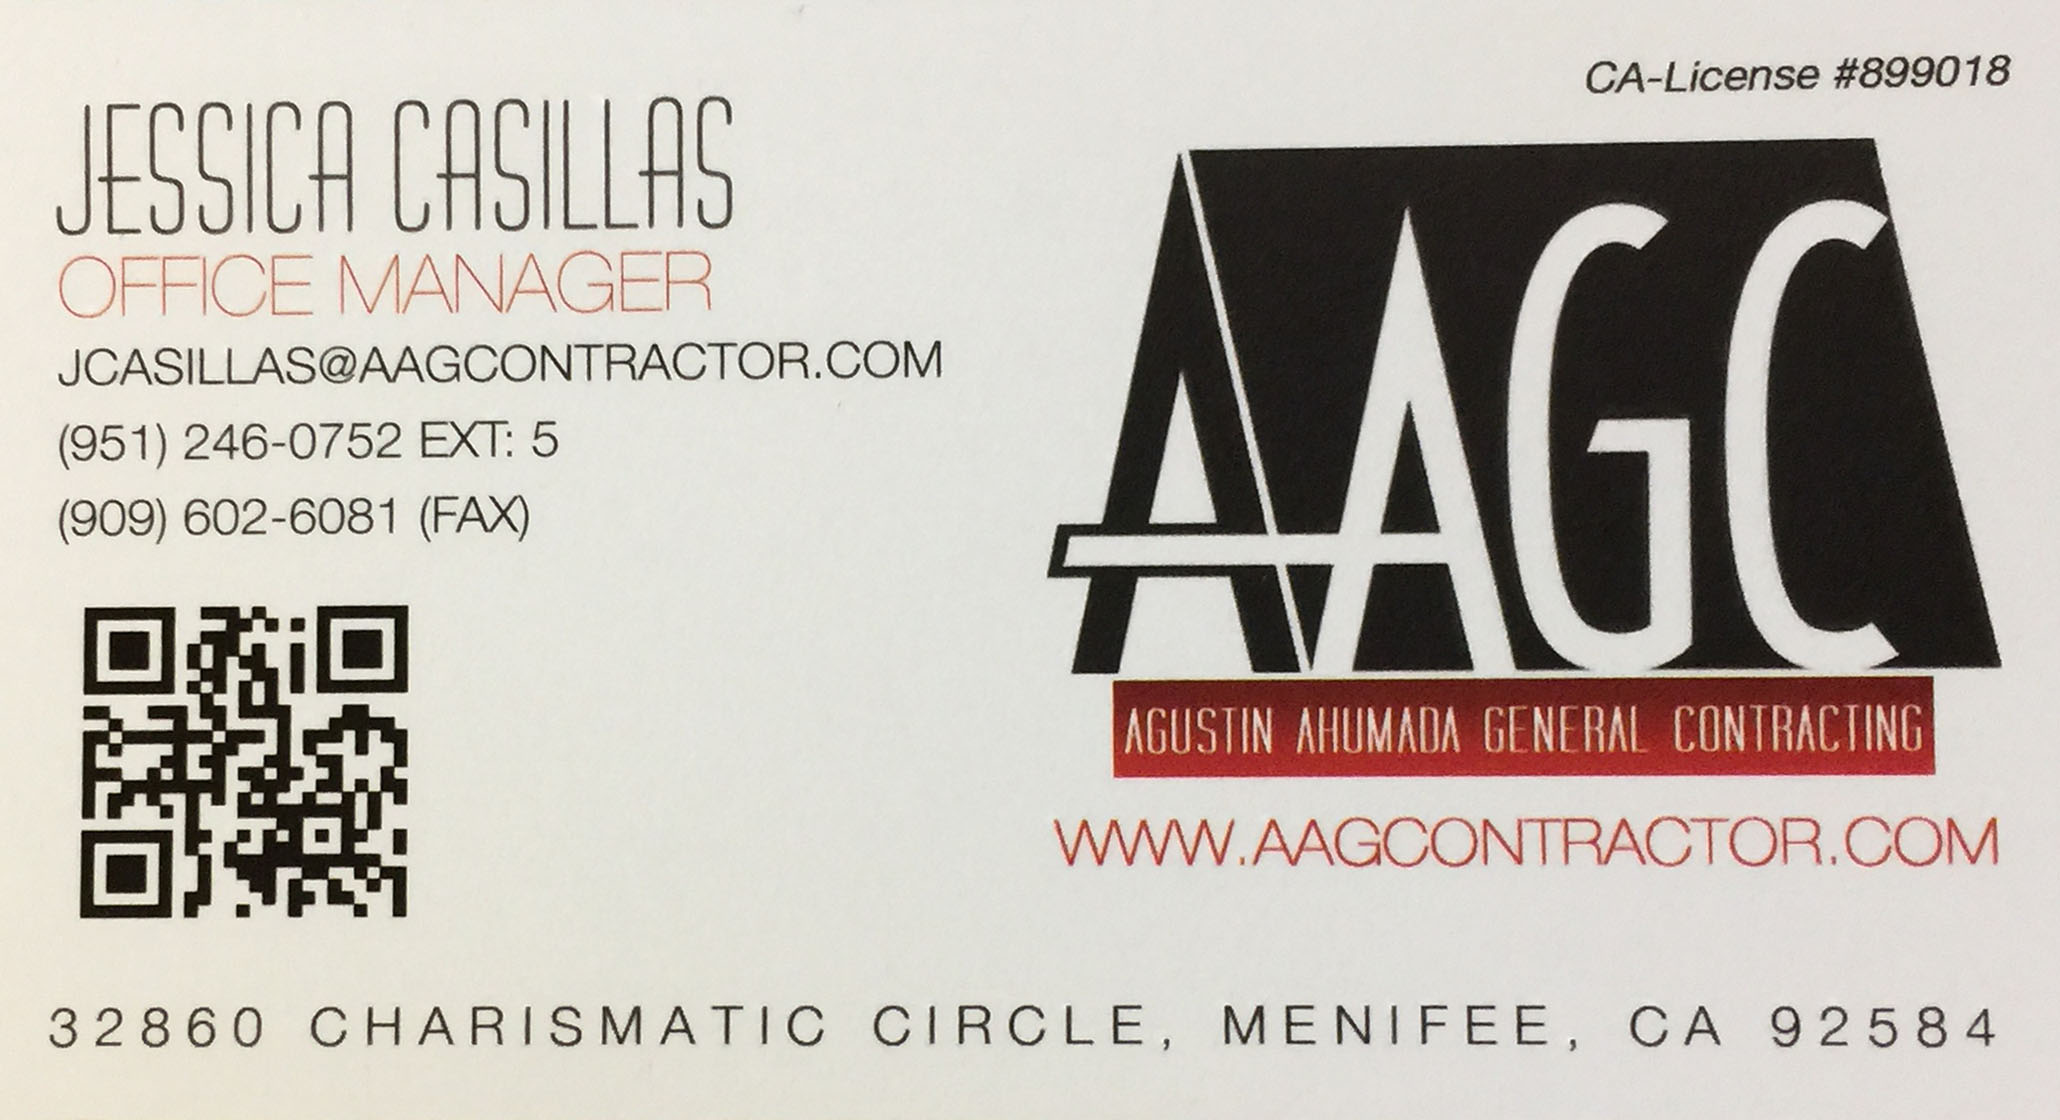 Agustin Ahumada General Contracting